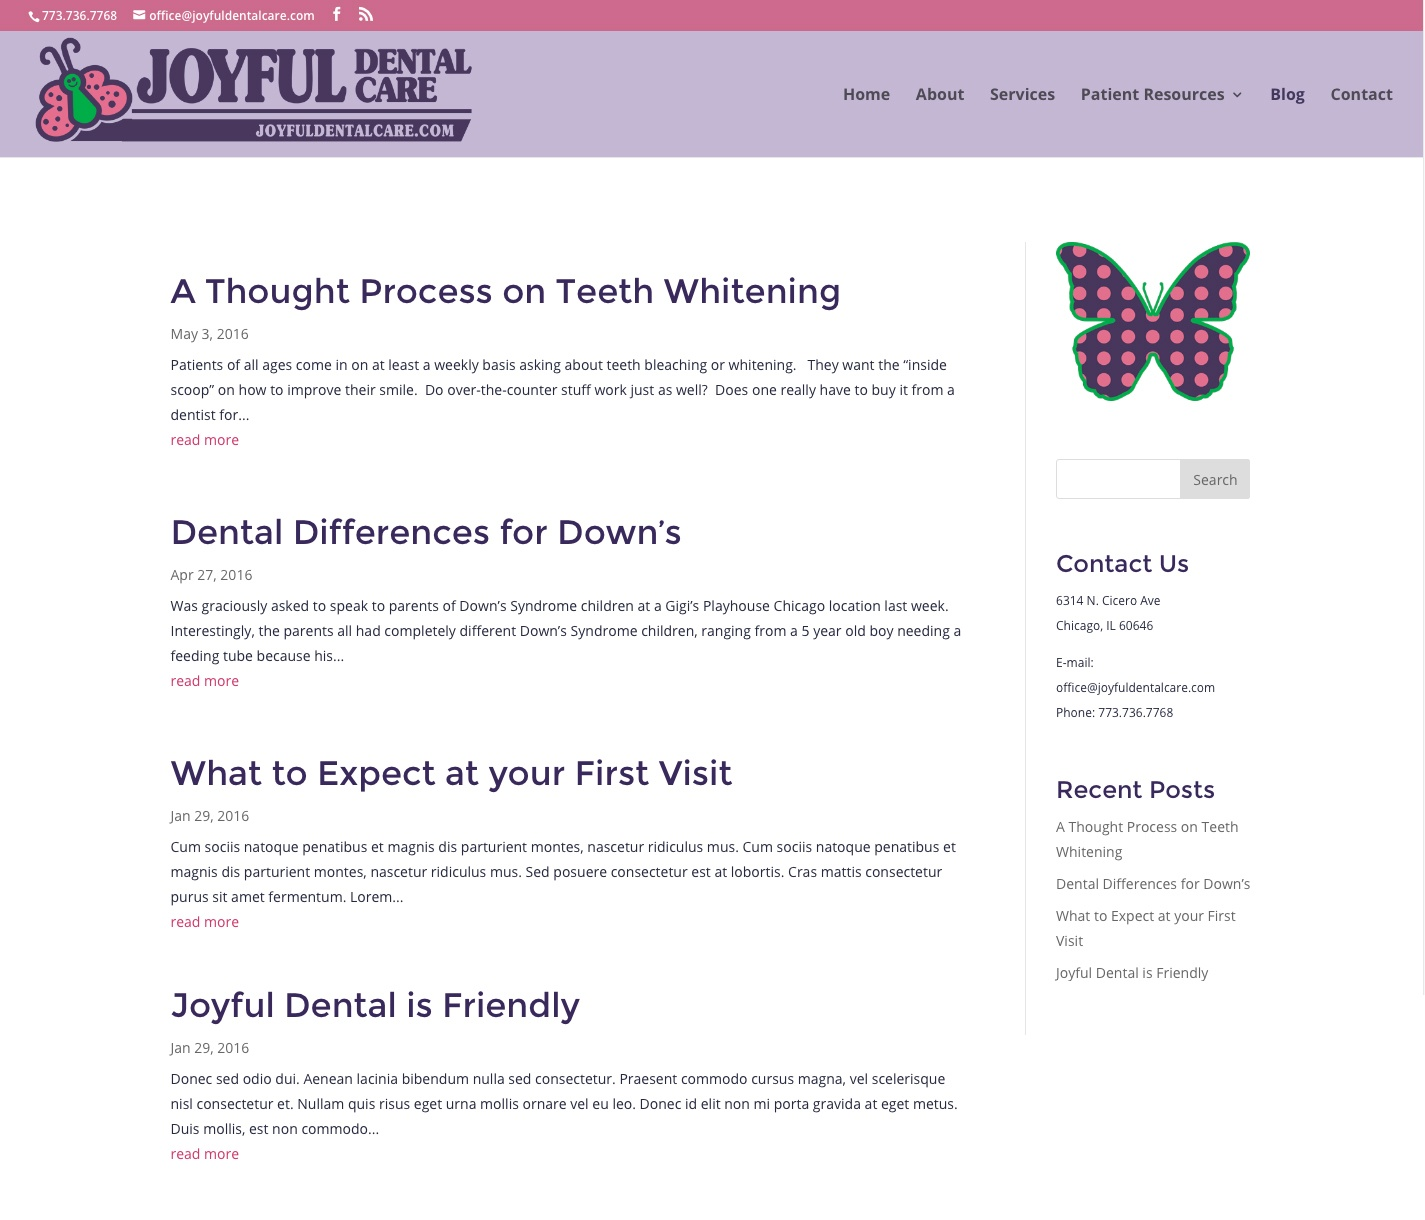 Updated Joyful Dental blog homepage